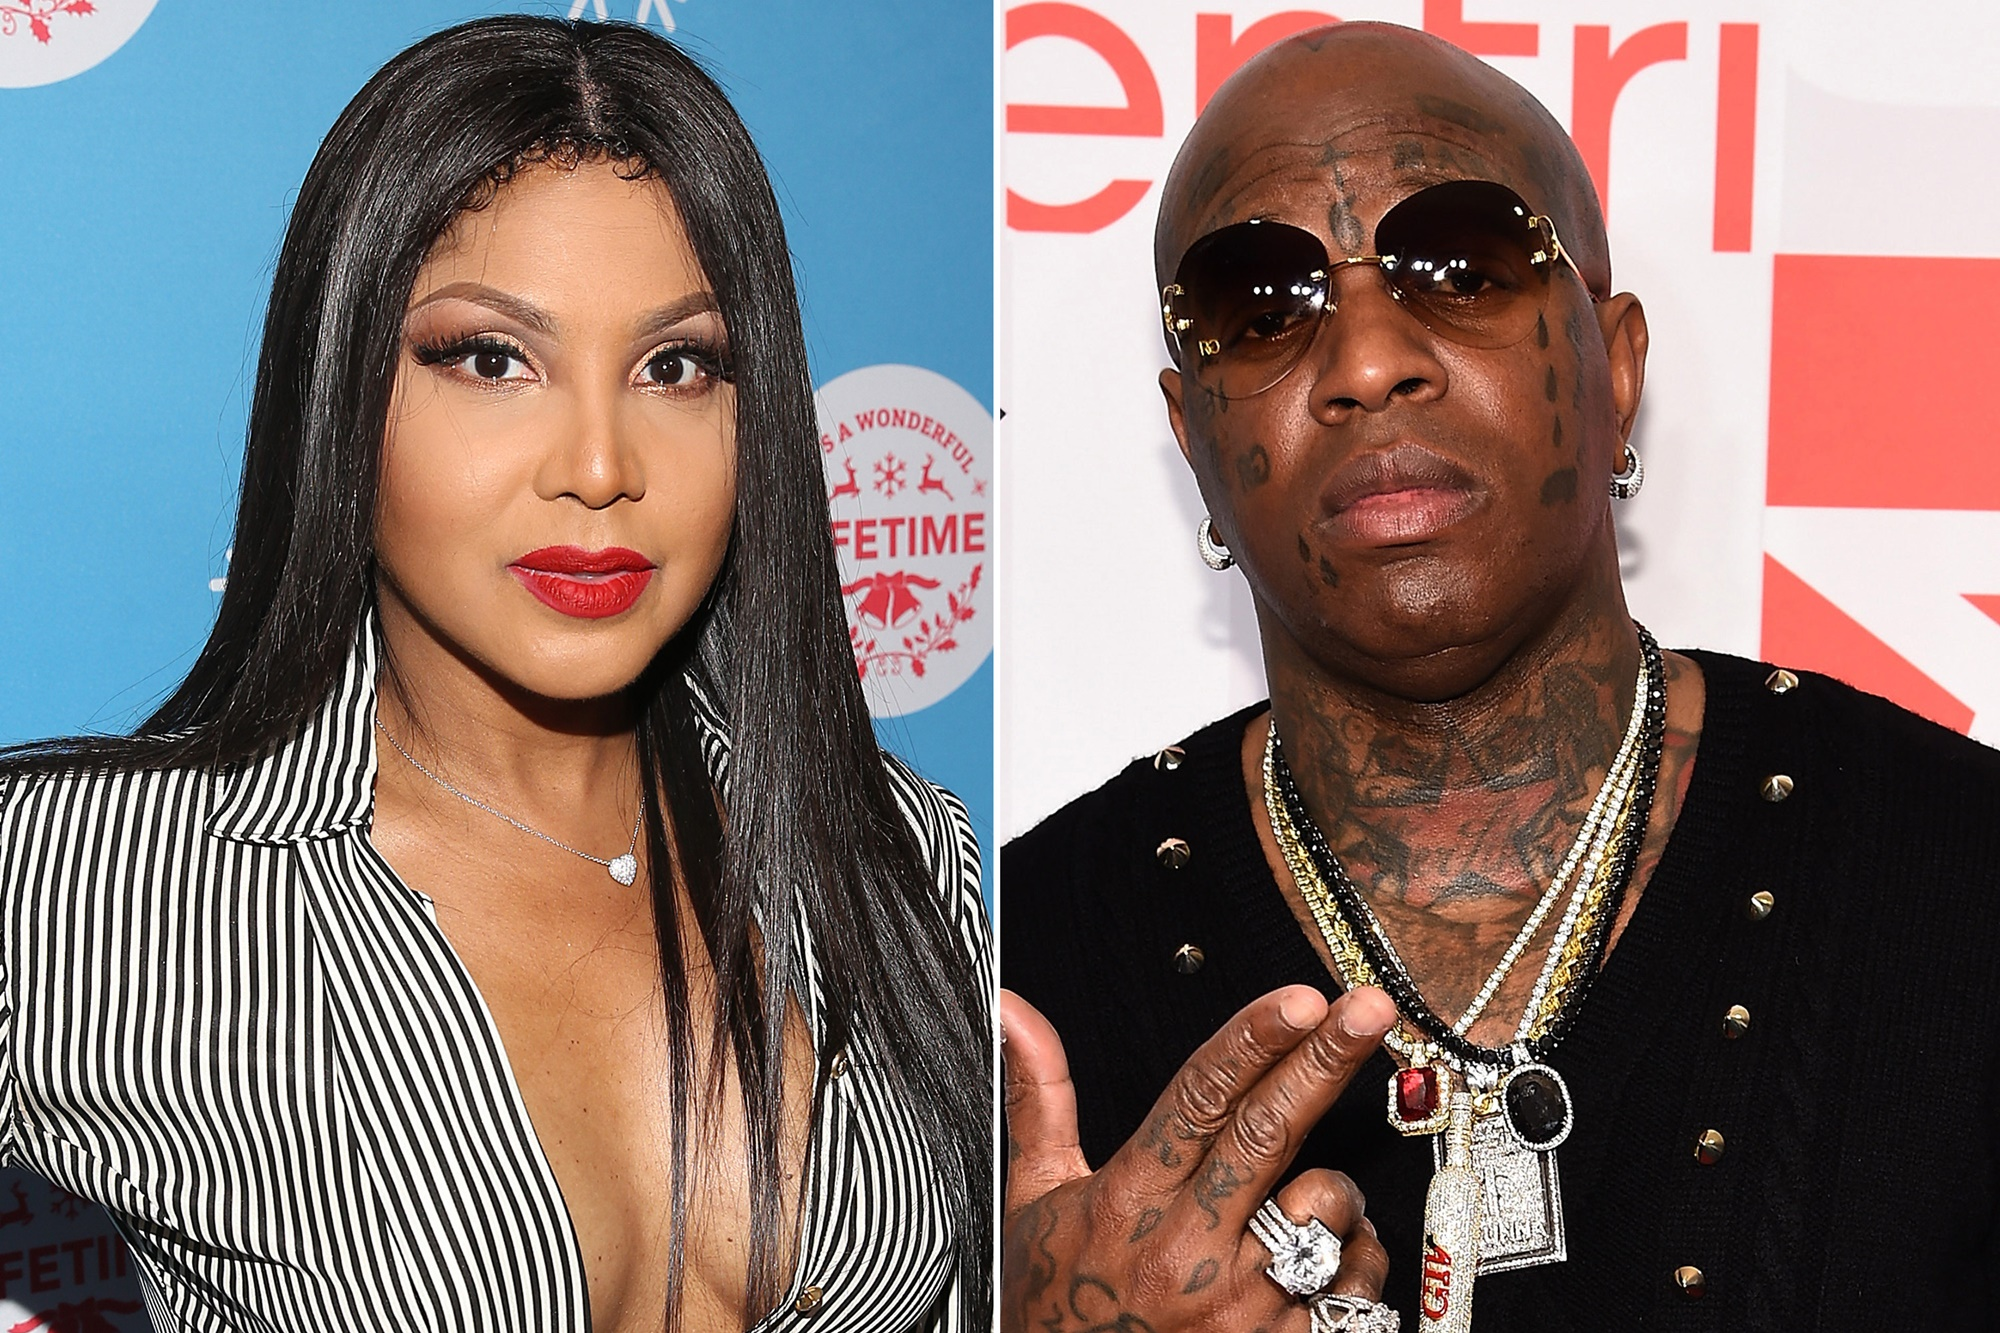 toni-braxton-shows-off-her-best-life-with-birdman-pictures-some-fans-are-raining-on-their-parade